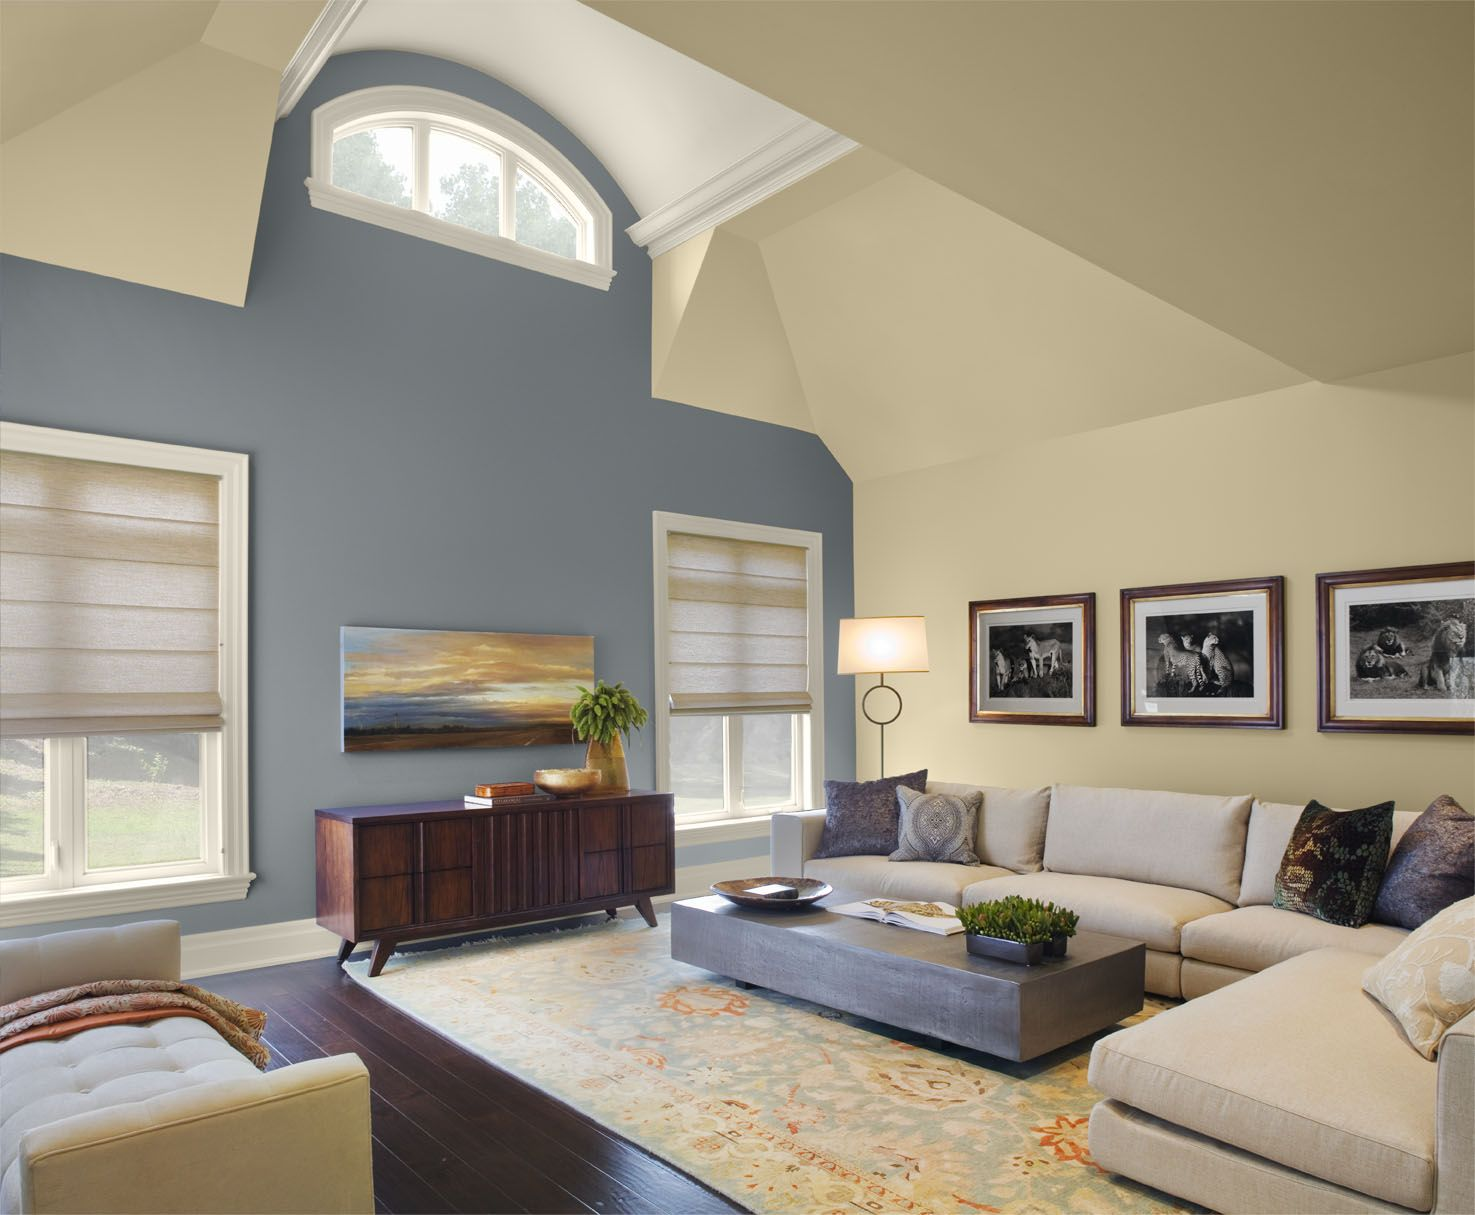 A living room 1 nopillow v6 arch ceiling detail navy walls and ceilings - Living room with cream walls ...